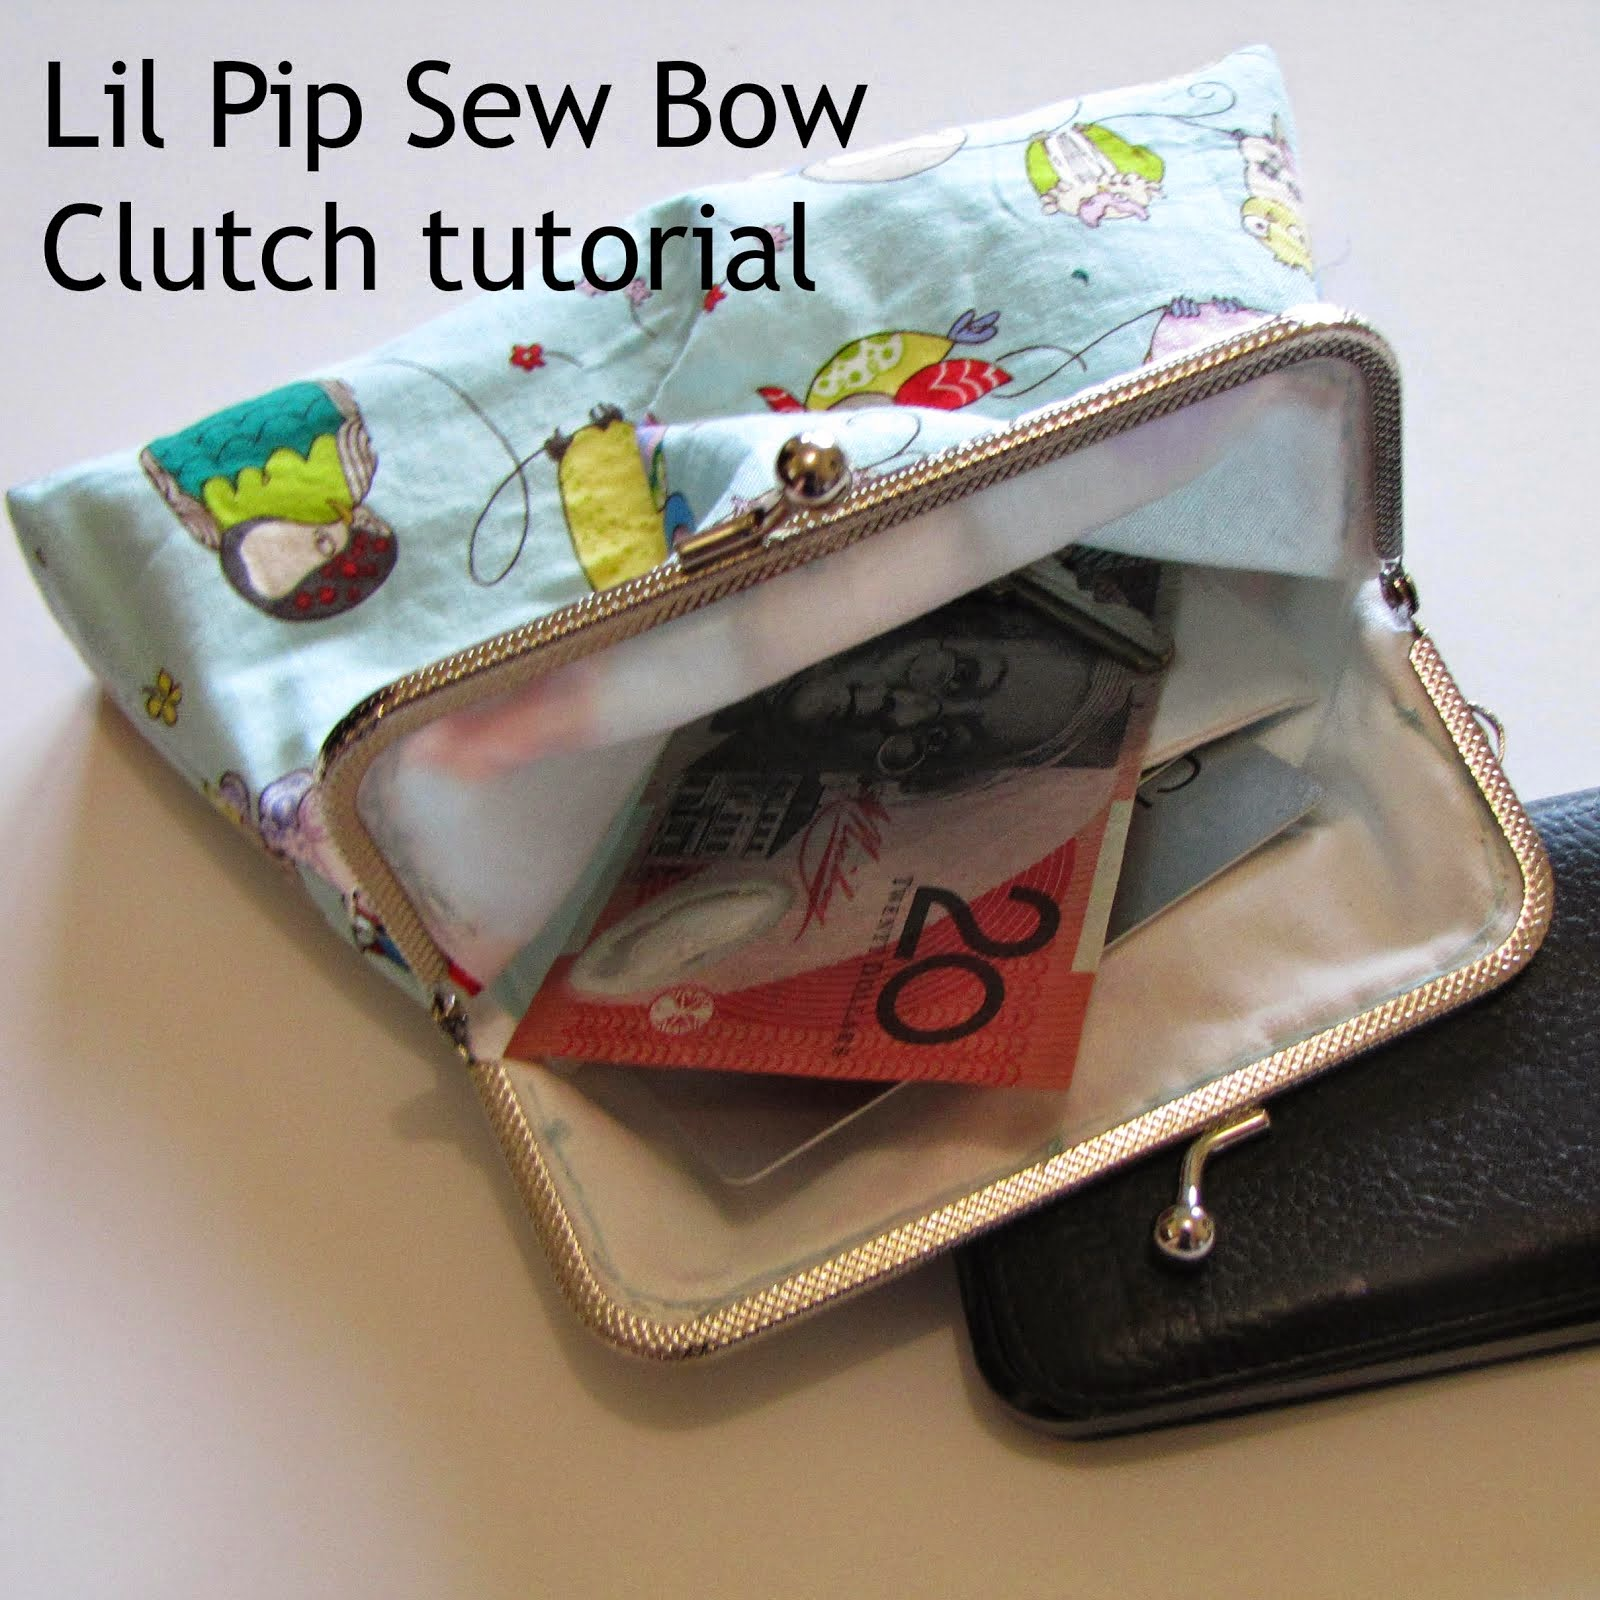 Lil Pip Sew Box Clutch tutorial